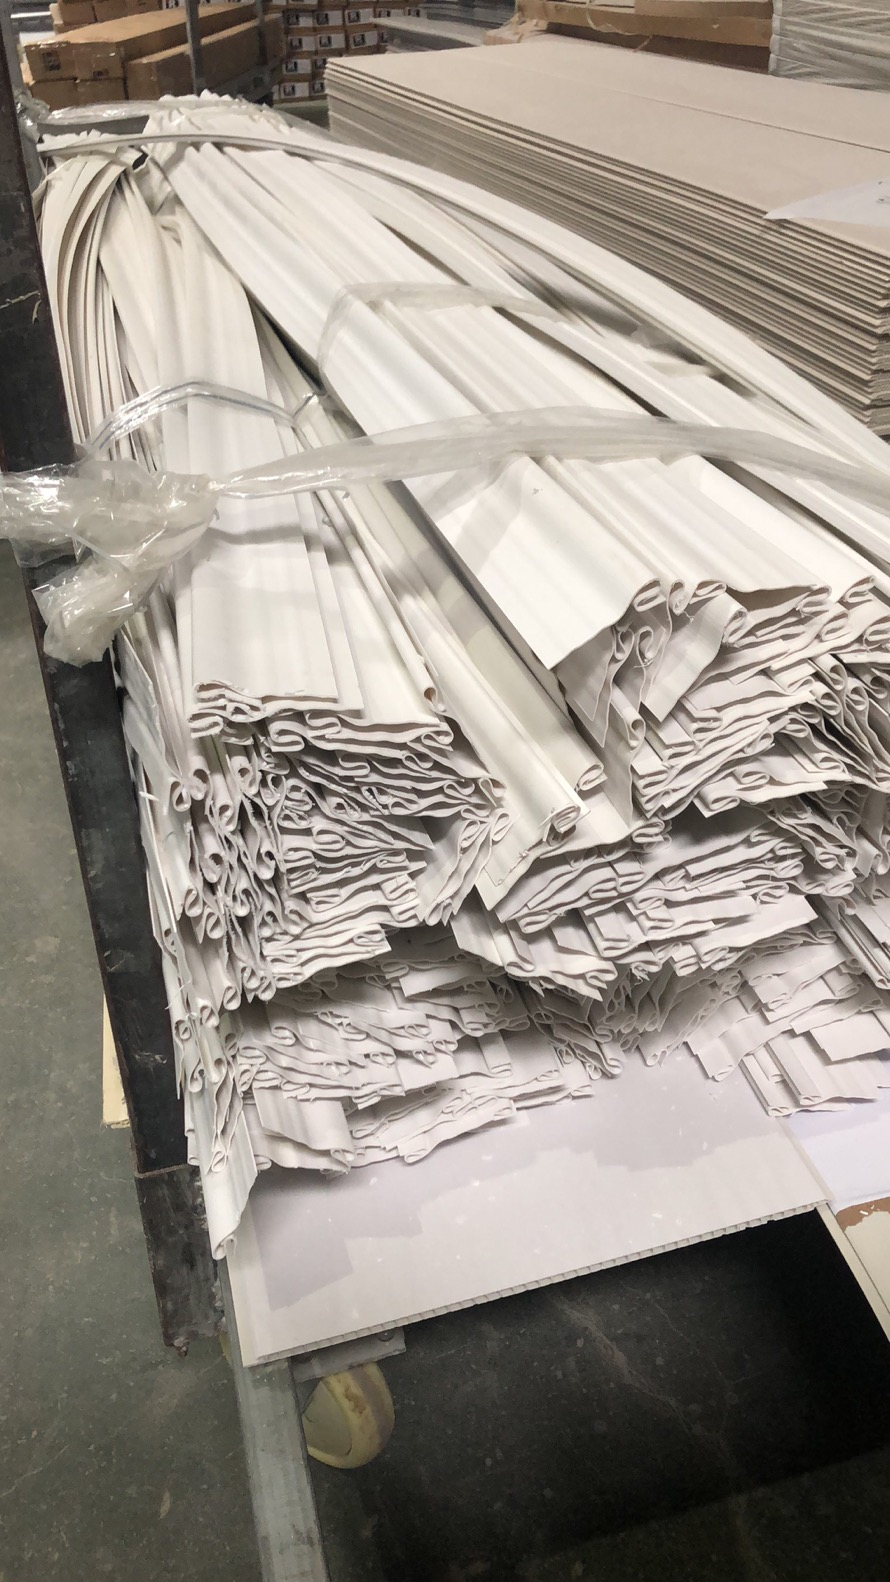 There are Vinyl Siding Accessories, Profiles, Trims, Corners, Panels and Production Lines